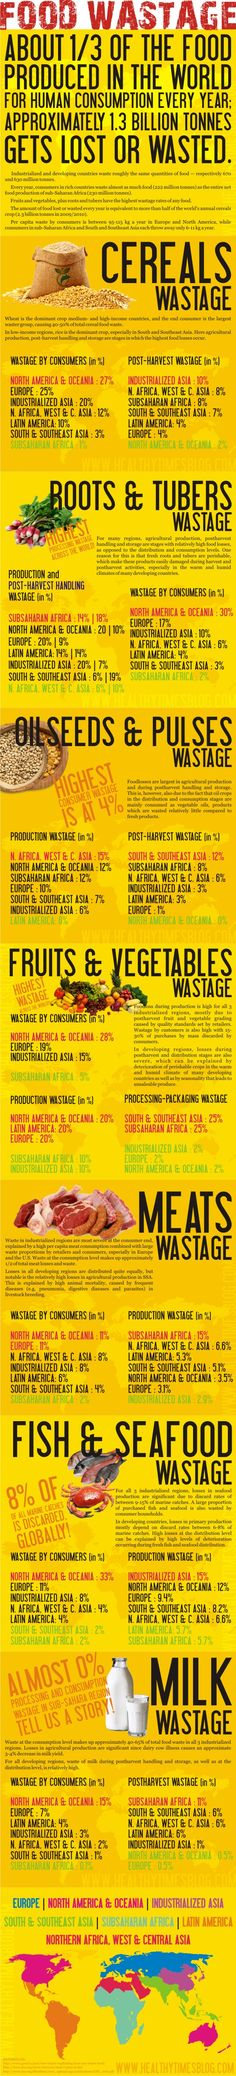 food wastage around the world food waste infographic